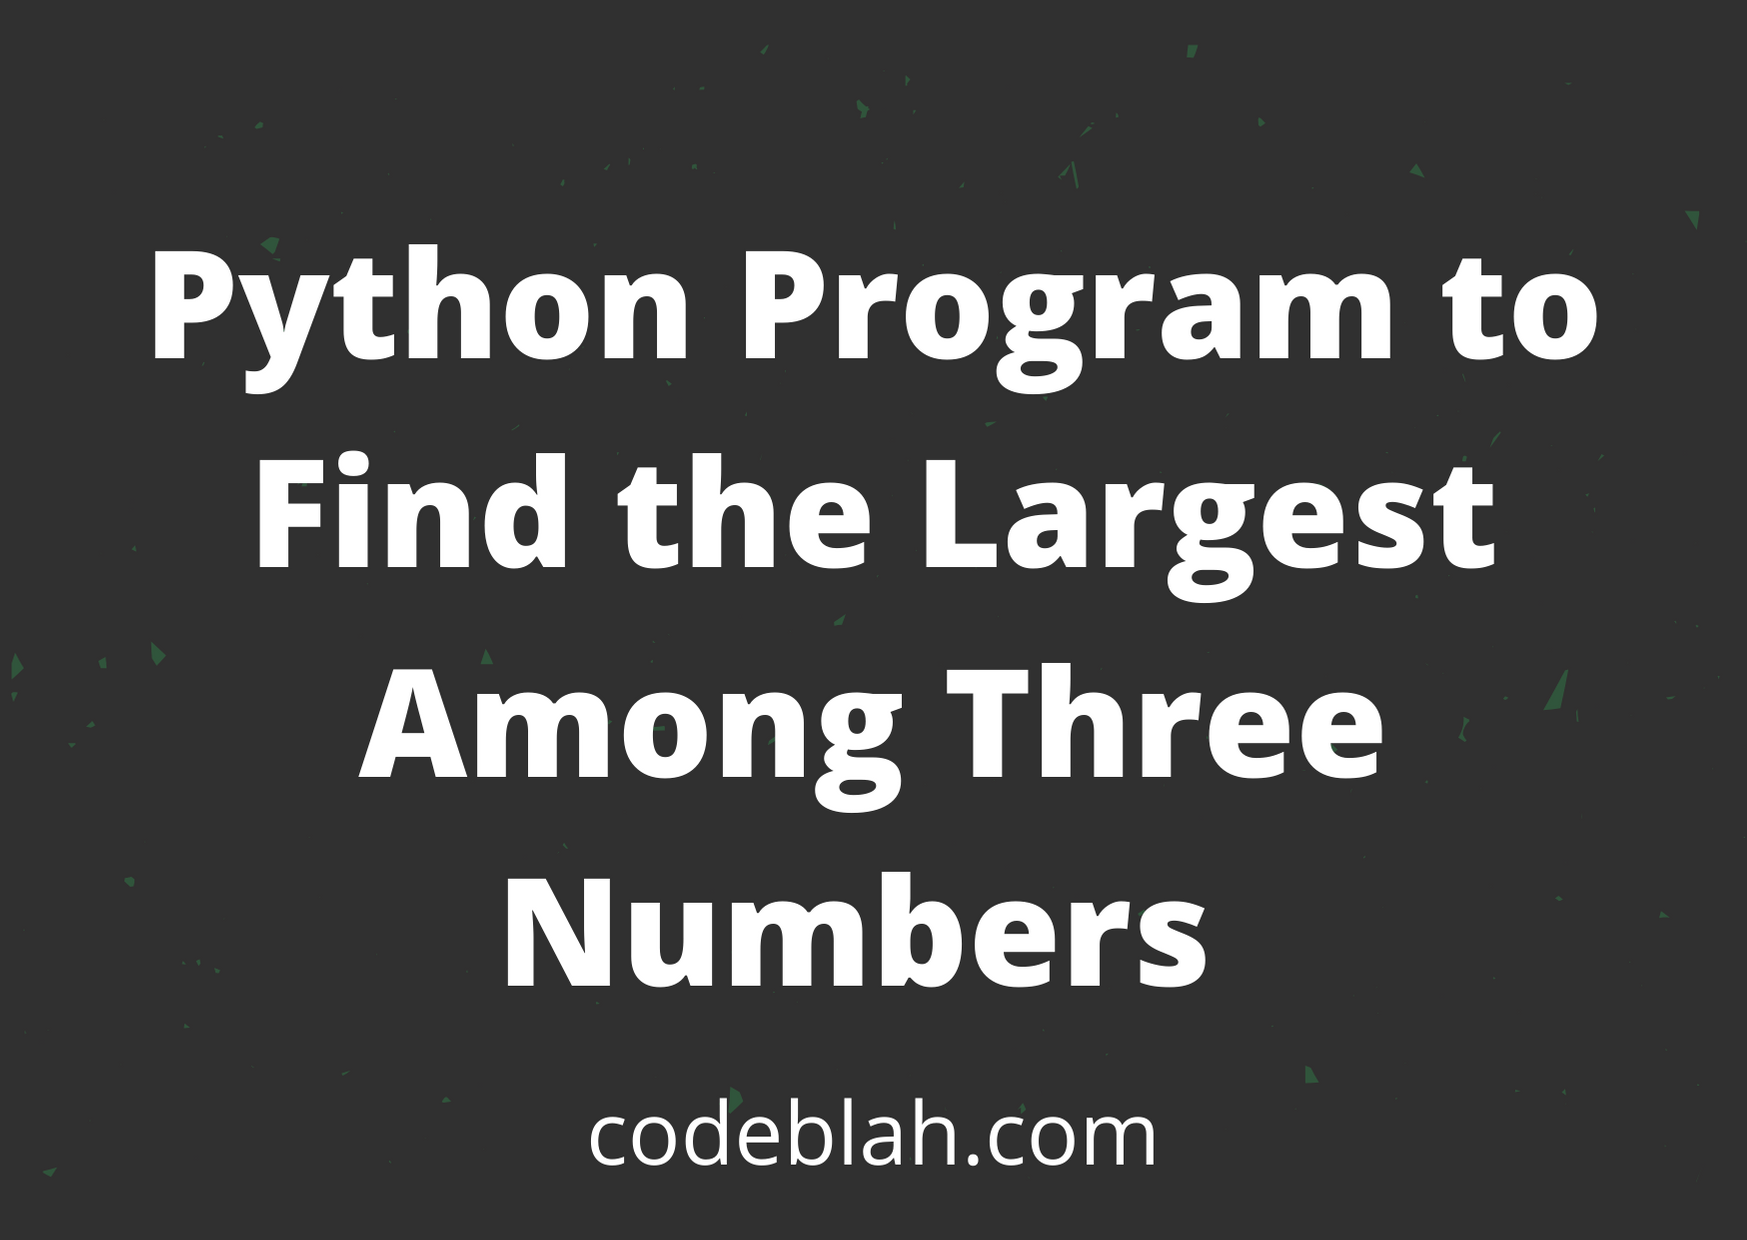 Python Program to Find the Largest Among Three Numbers